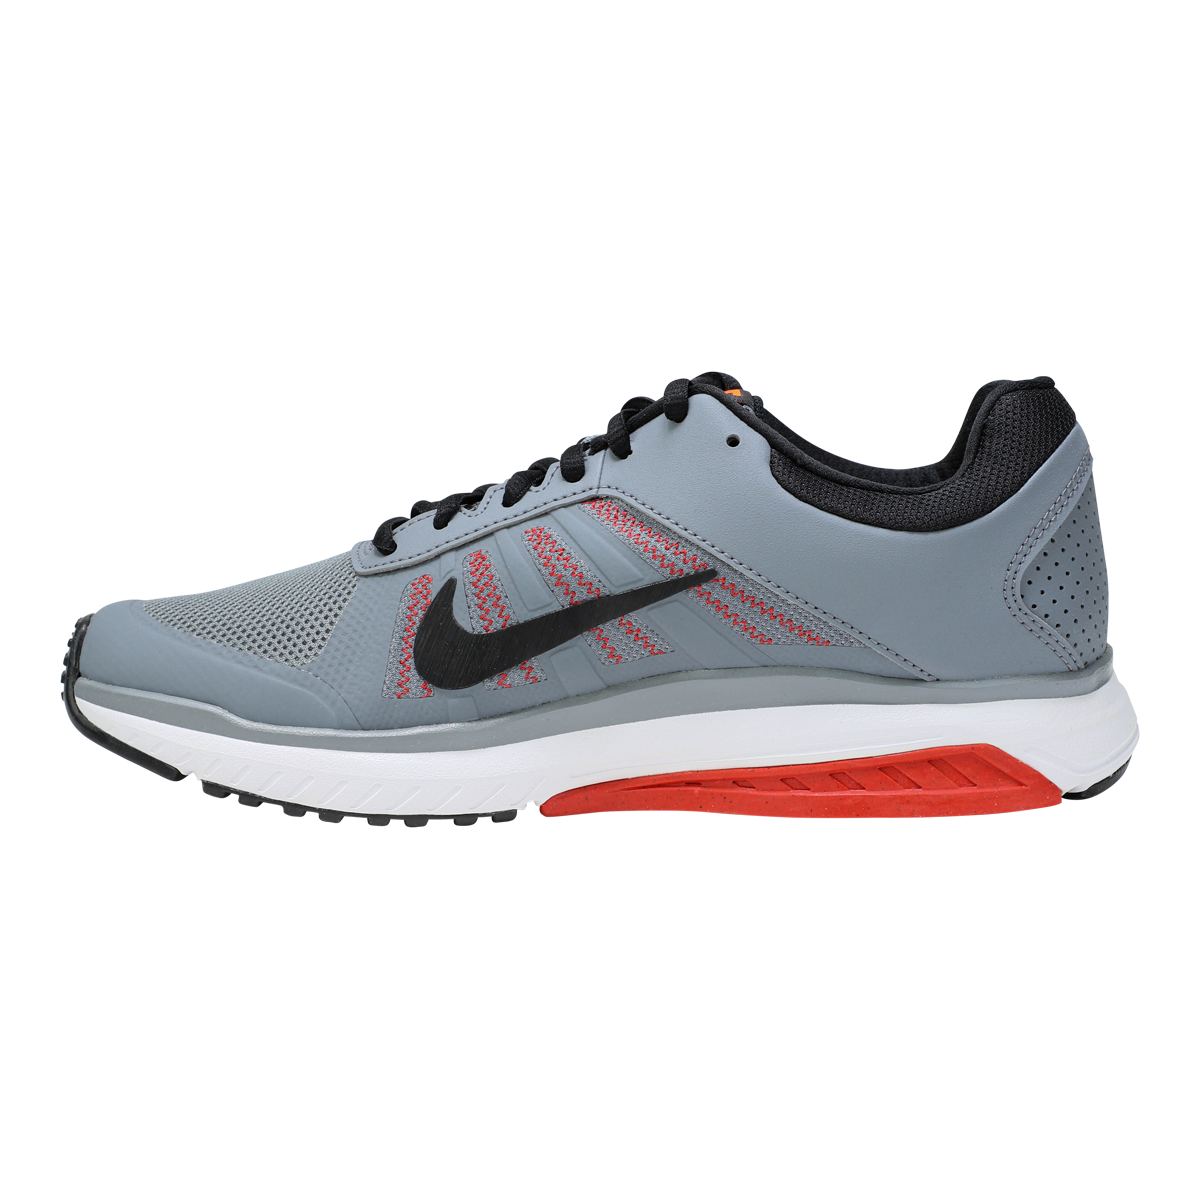 Nike-Men-039-s-Dart-12-MSL-Running-Shoes thumbnail 17